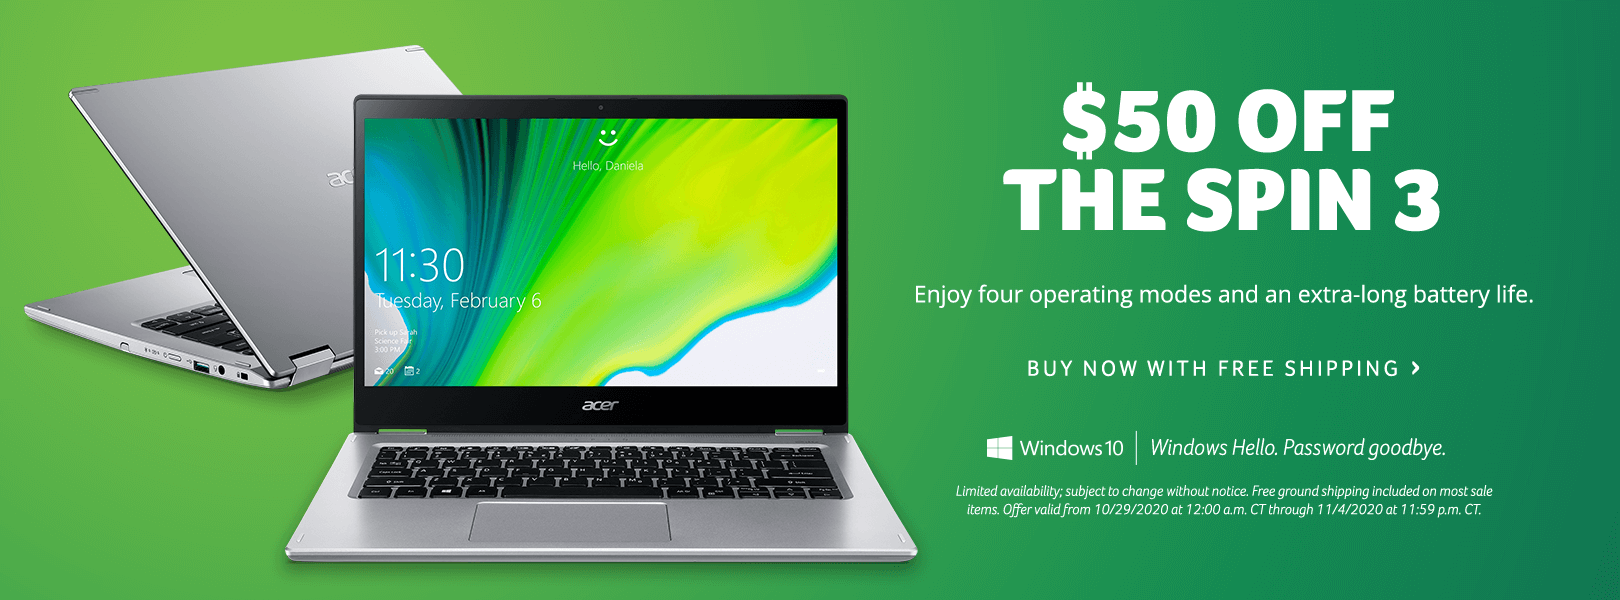 Save $50 on the Spin 3 Laptop